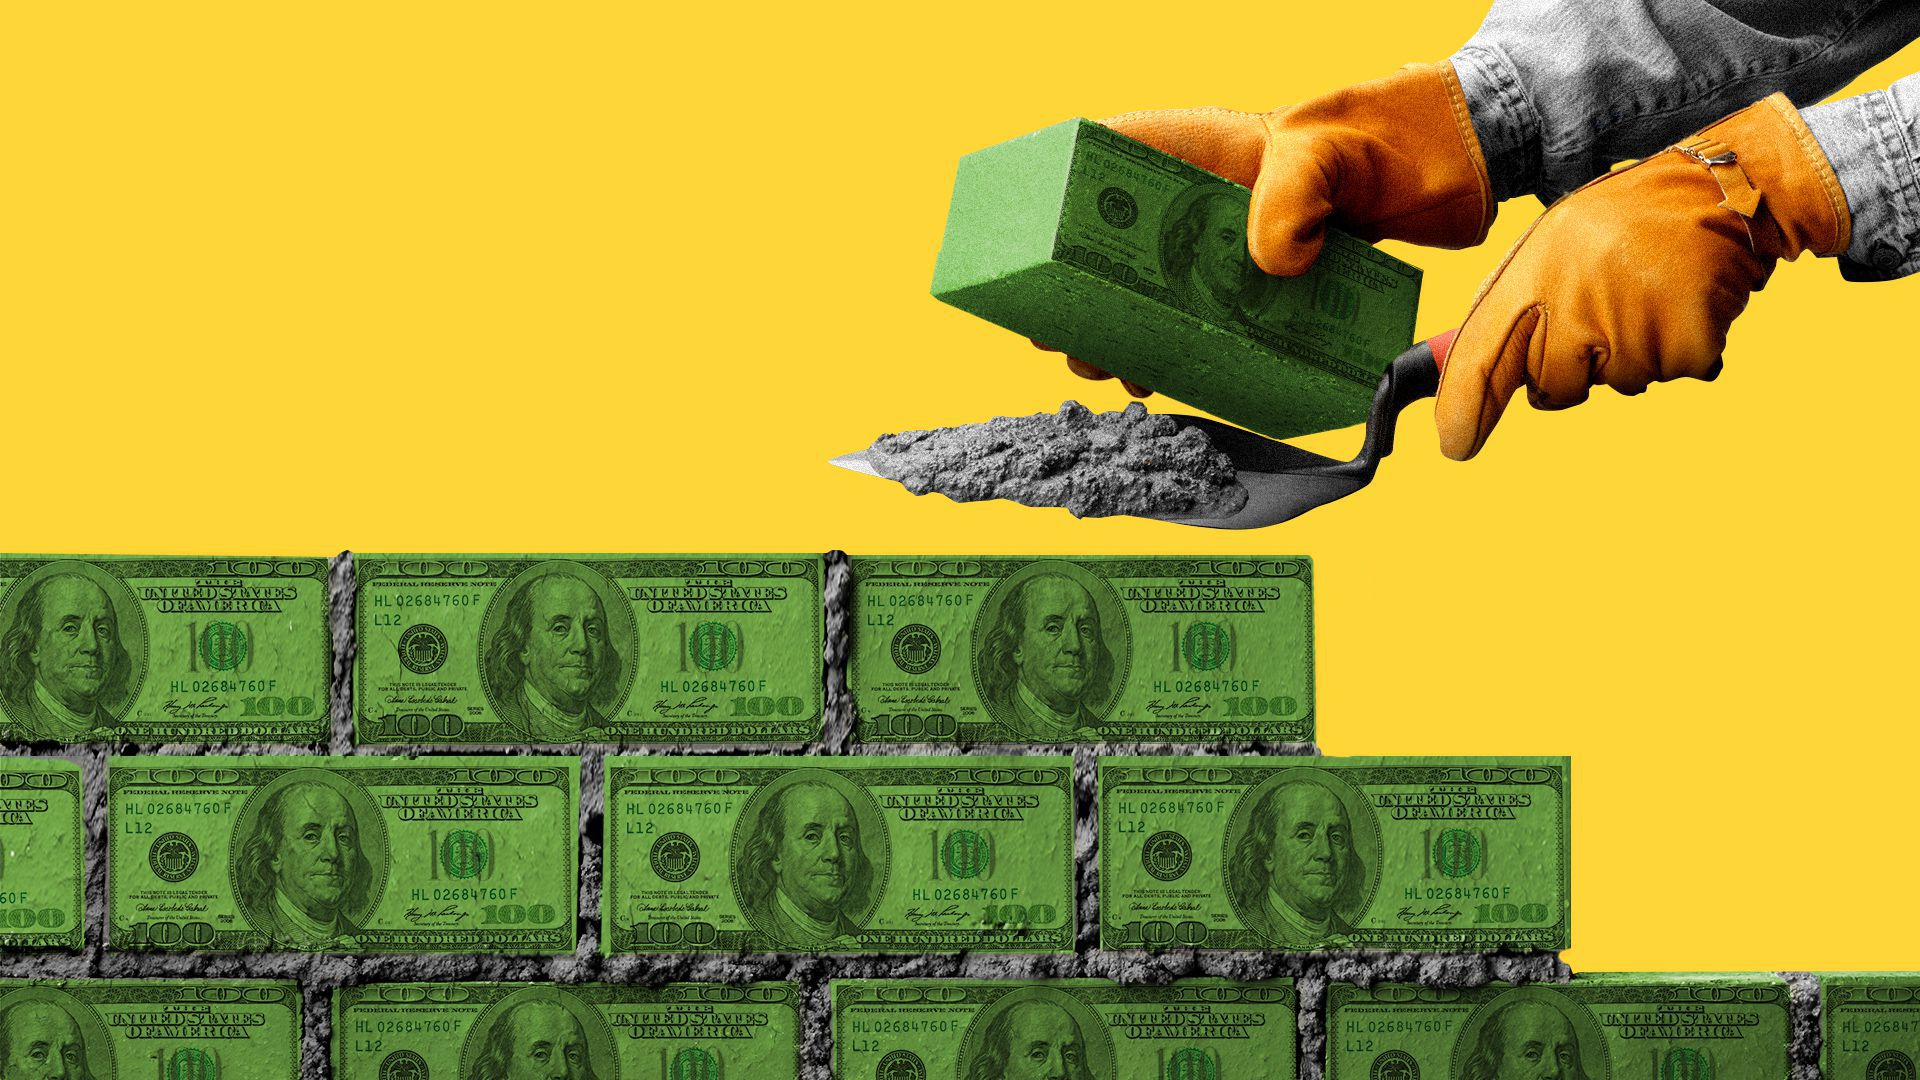 Illustration of a pair of hands laying down bricks made of hundred dollar bills.